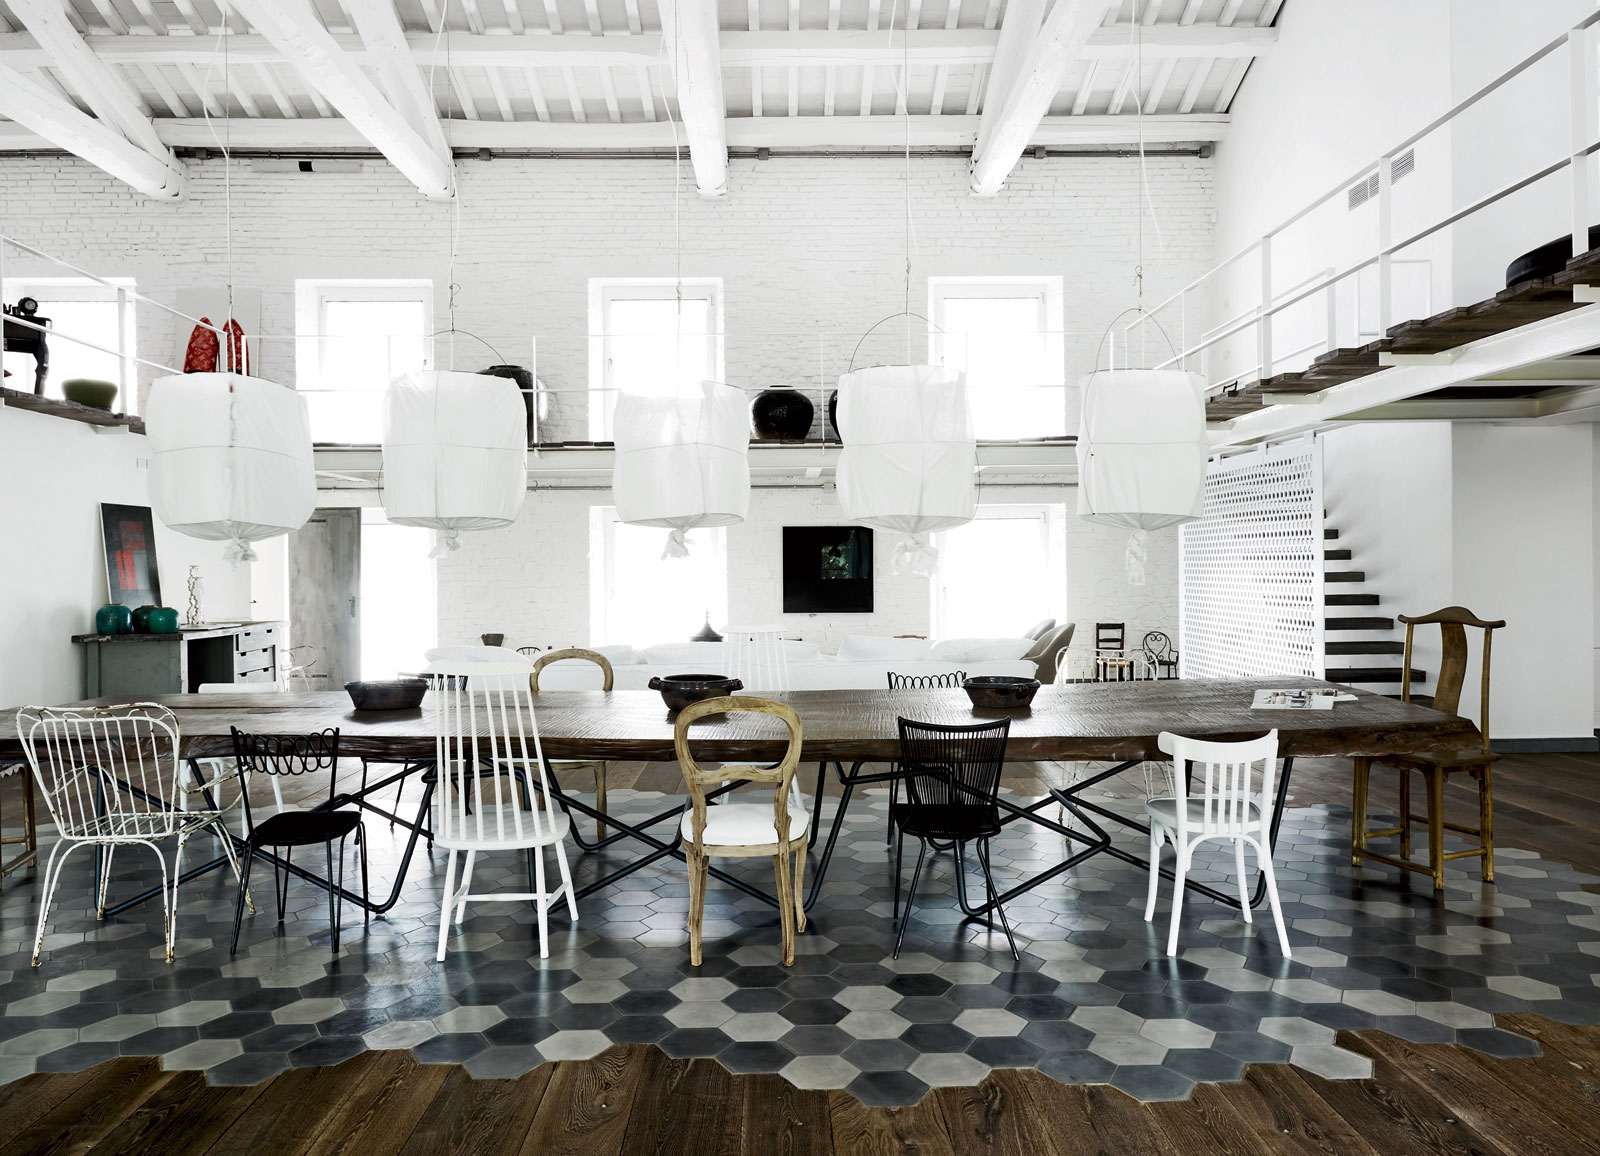 Renovation in umbria by paola navone a renovation in umbria by paola navone dailygadgetfo Choice Image